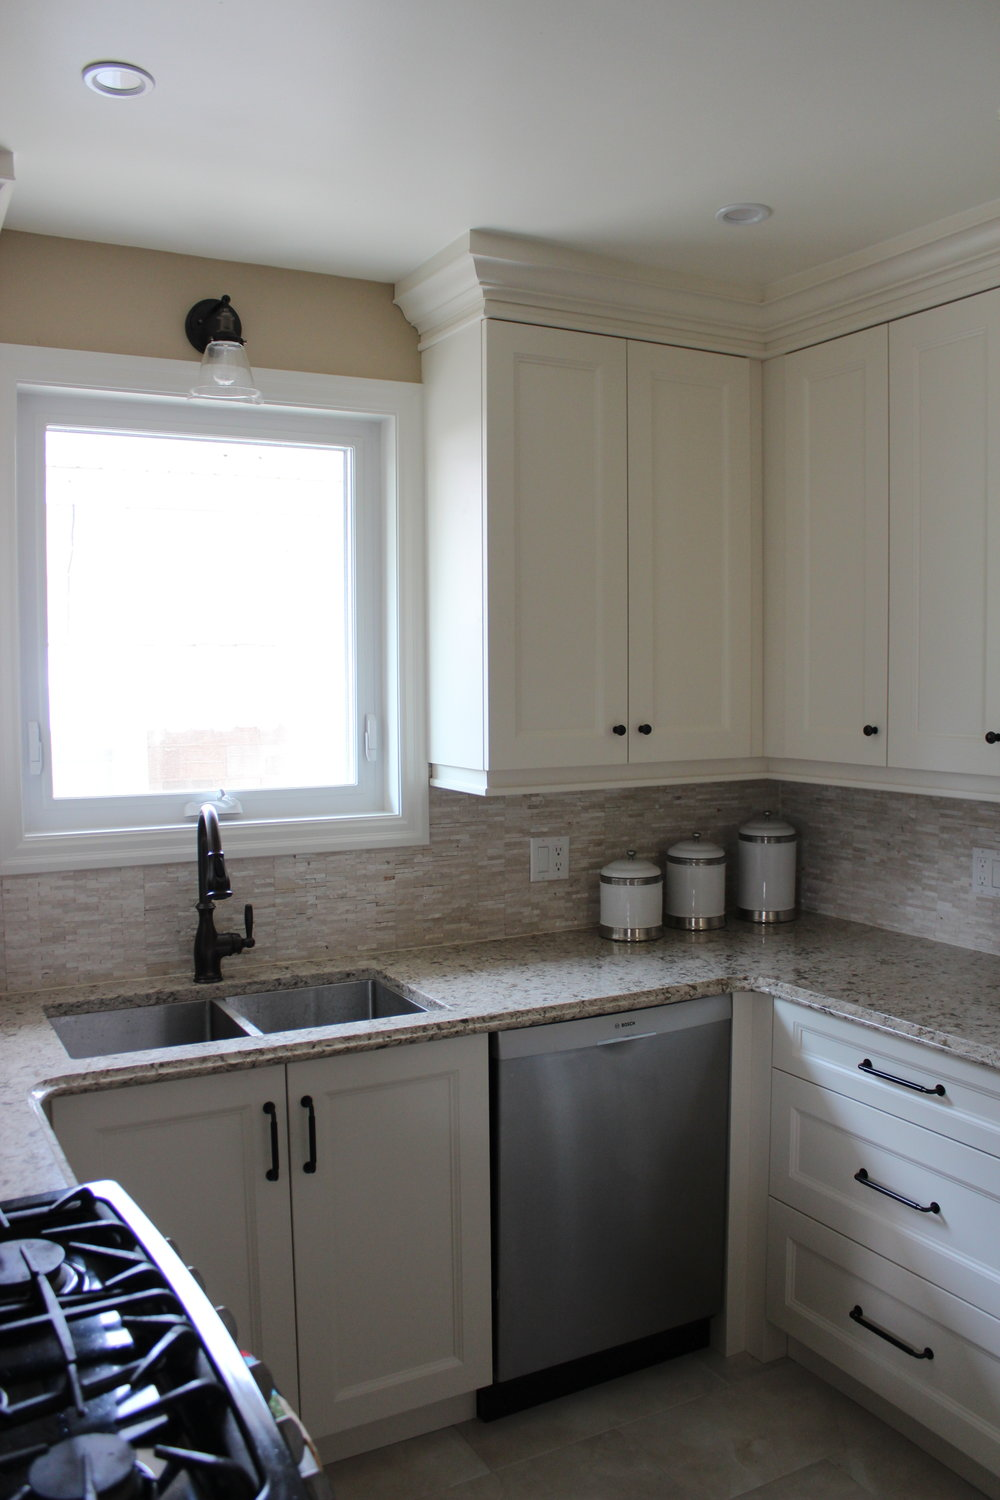 dunkirk residence compact kitchen